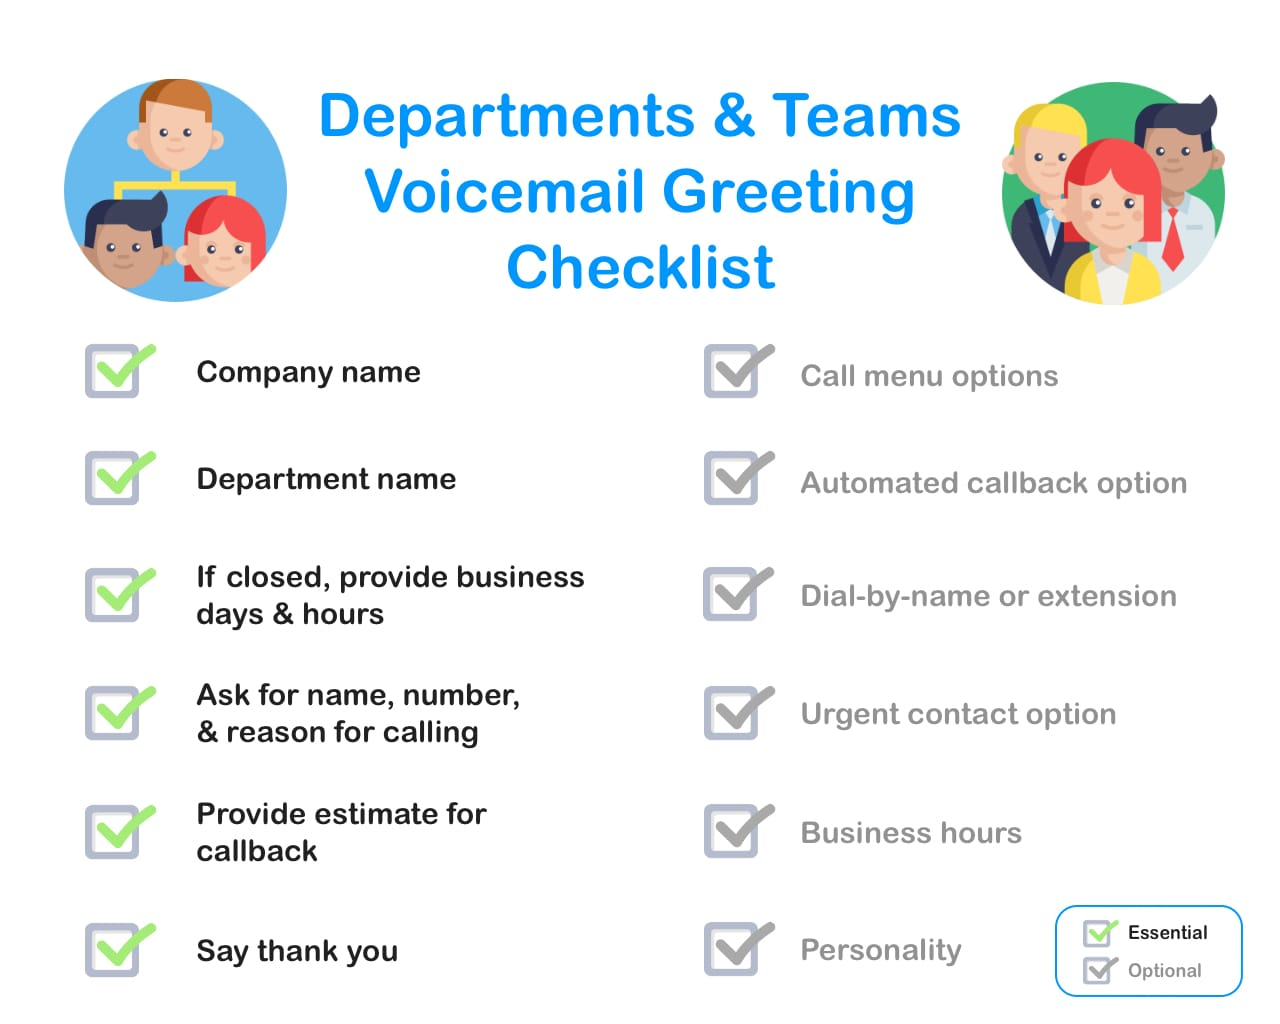 Professional Business Voicemail Greeting Checklist for Small Business Departments and Teams